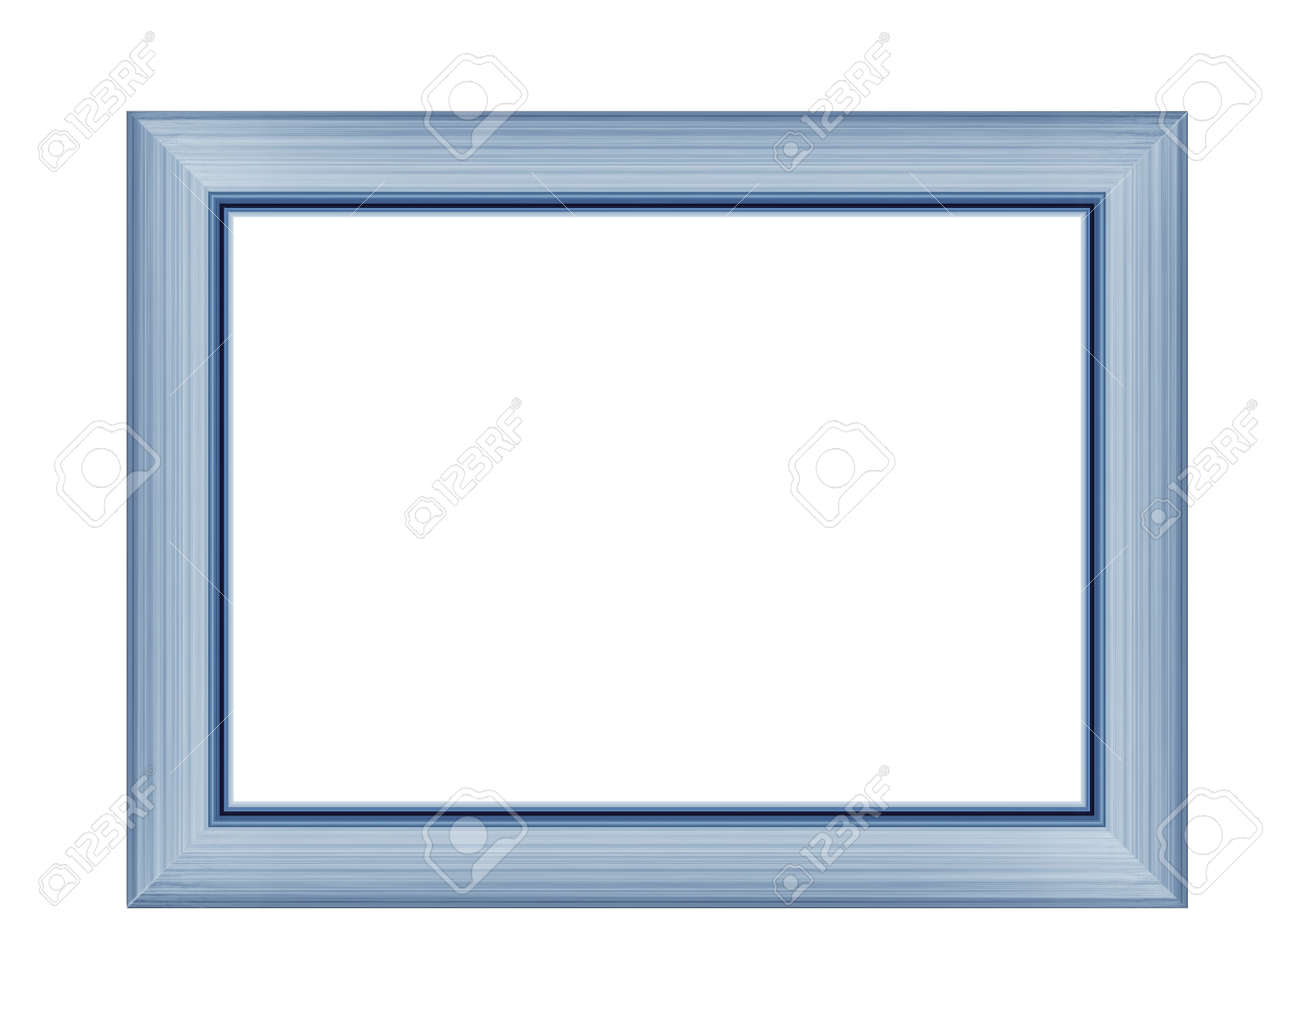 Blue frame for picture or photo, frame for a mirror isolated on white background. With clipping path - 170242745